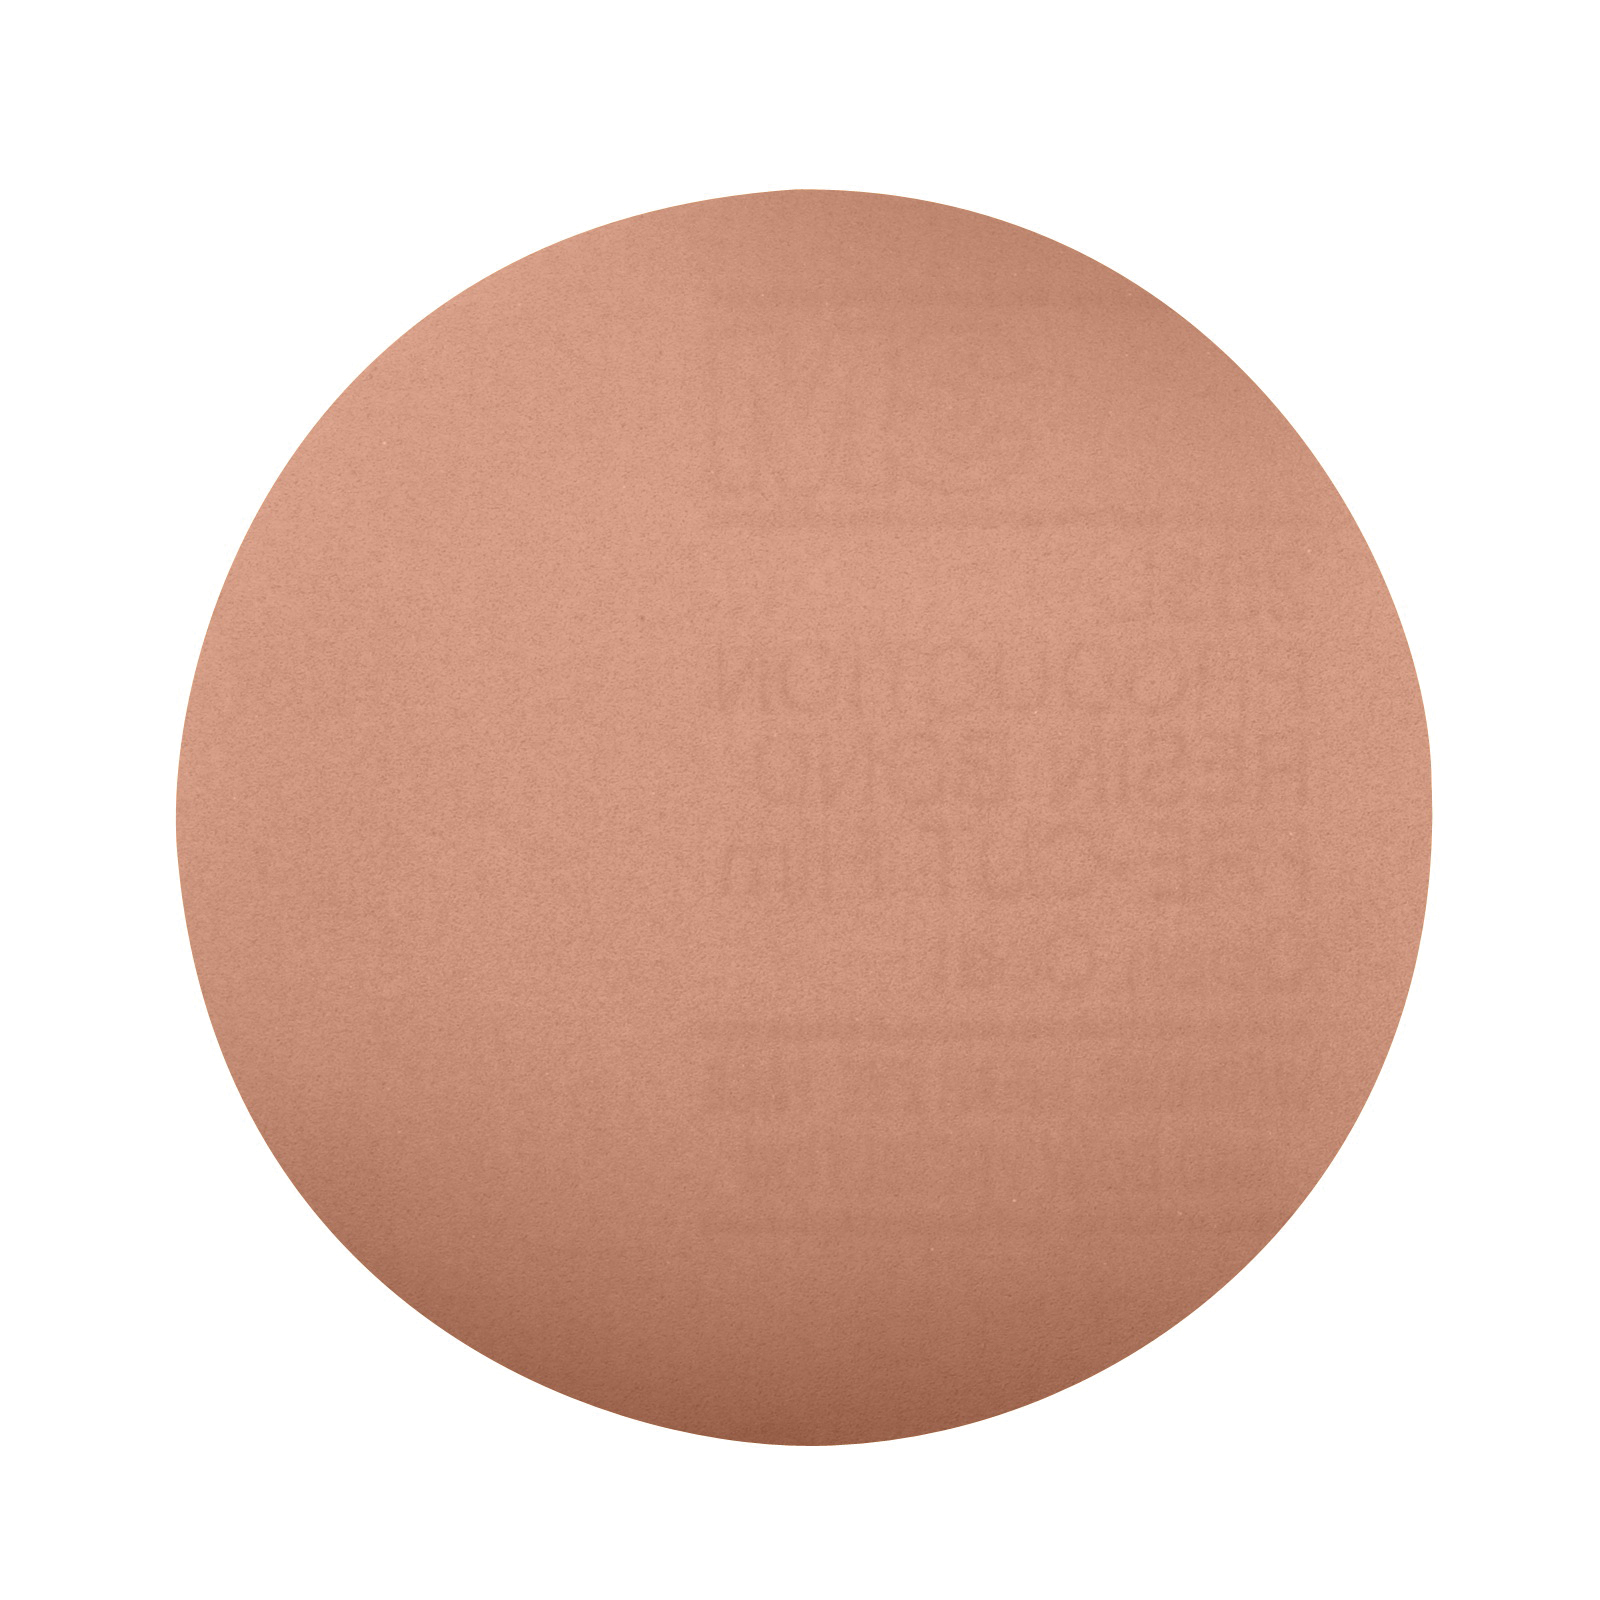 3M™ 051144-84159 Type D Microfinishing Open Coated PSA Coated Abrasive Disc, 5 in Dia, 40 micron Grit, Extra Fine Grade, Aluminum Oxide Abrasive, Polyester Film Backing